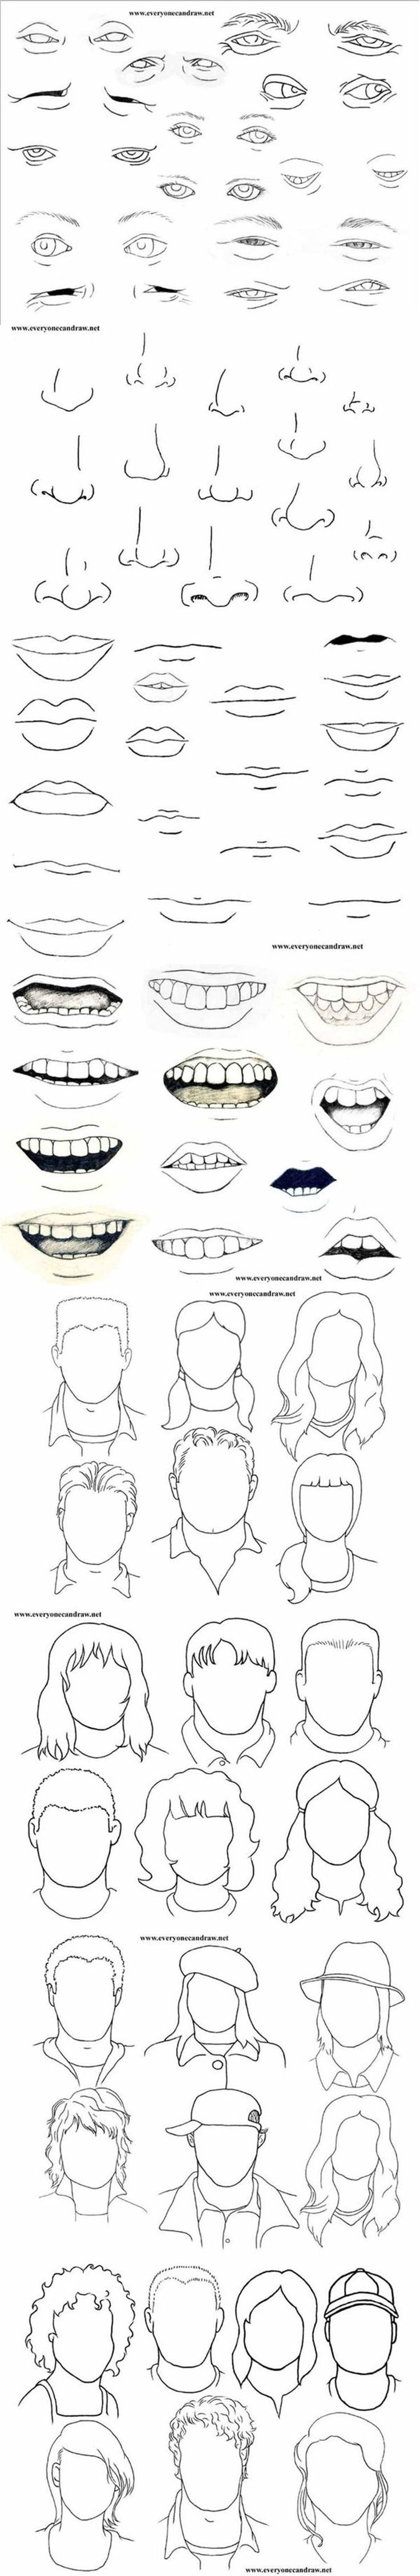 Different ways to draw human features http://www.thingstodraw.info/101-worlds-most-easy-and-cool-things-to-draw/